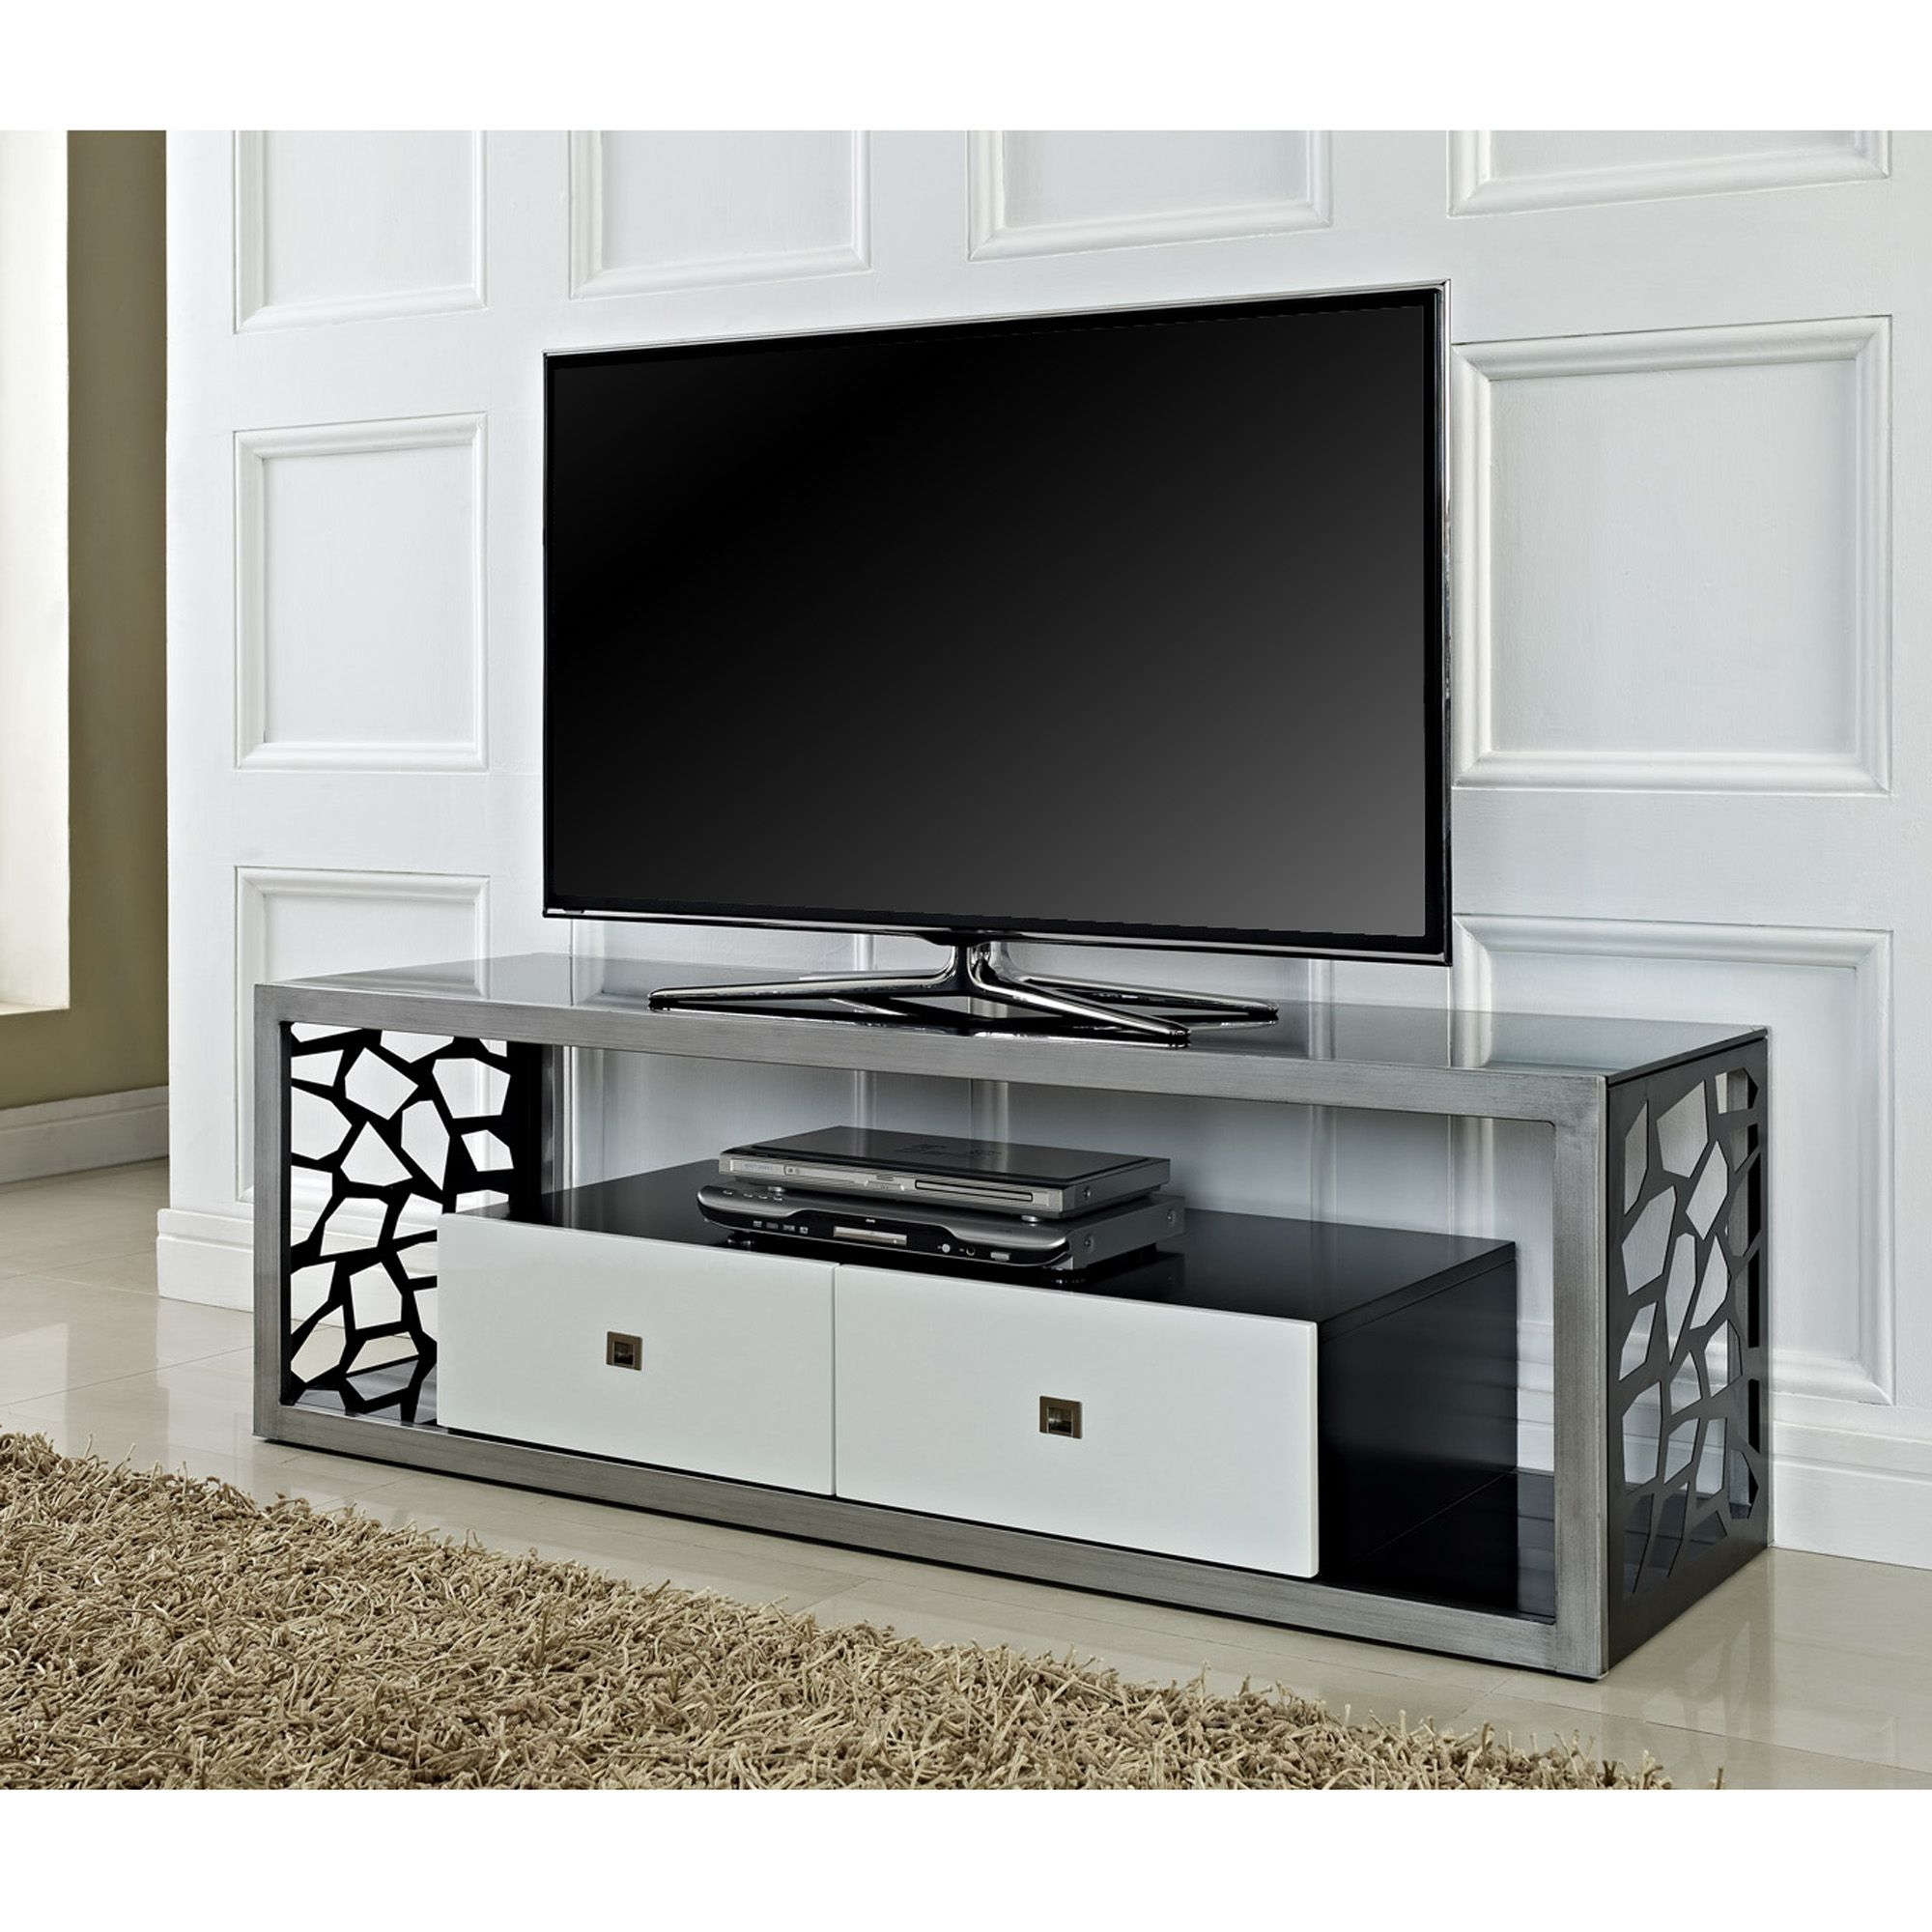 "Beautiful 60"" Mosaic Tv Stand, Brushed Silver Frame With White Intended For Valencia 60 Inch Tv Stands (View 19 of 20)"